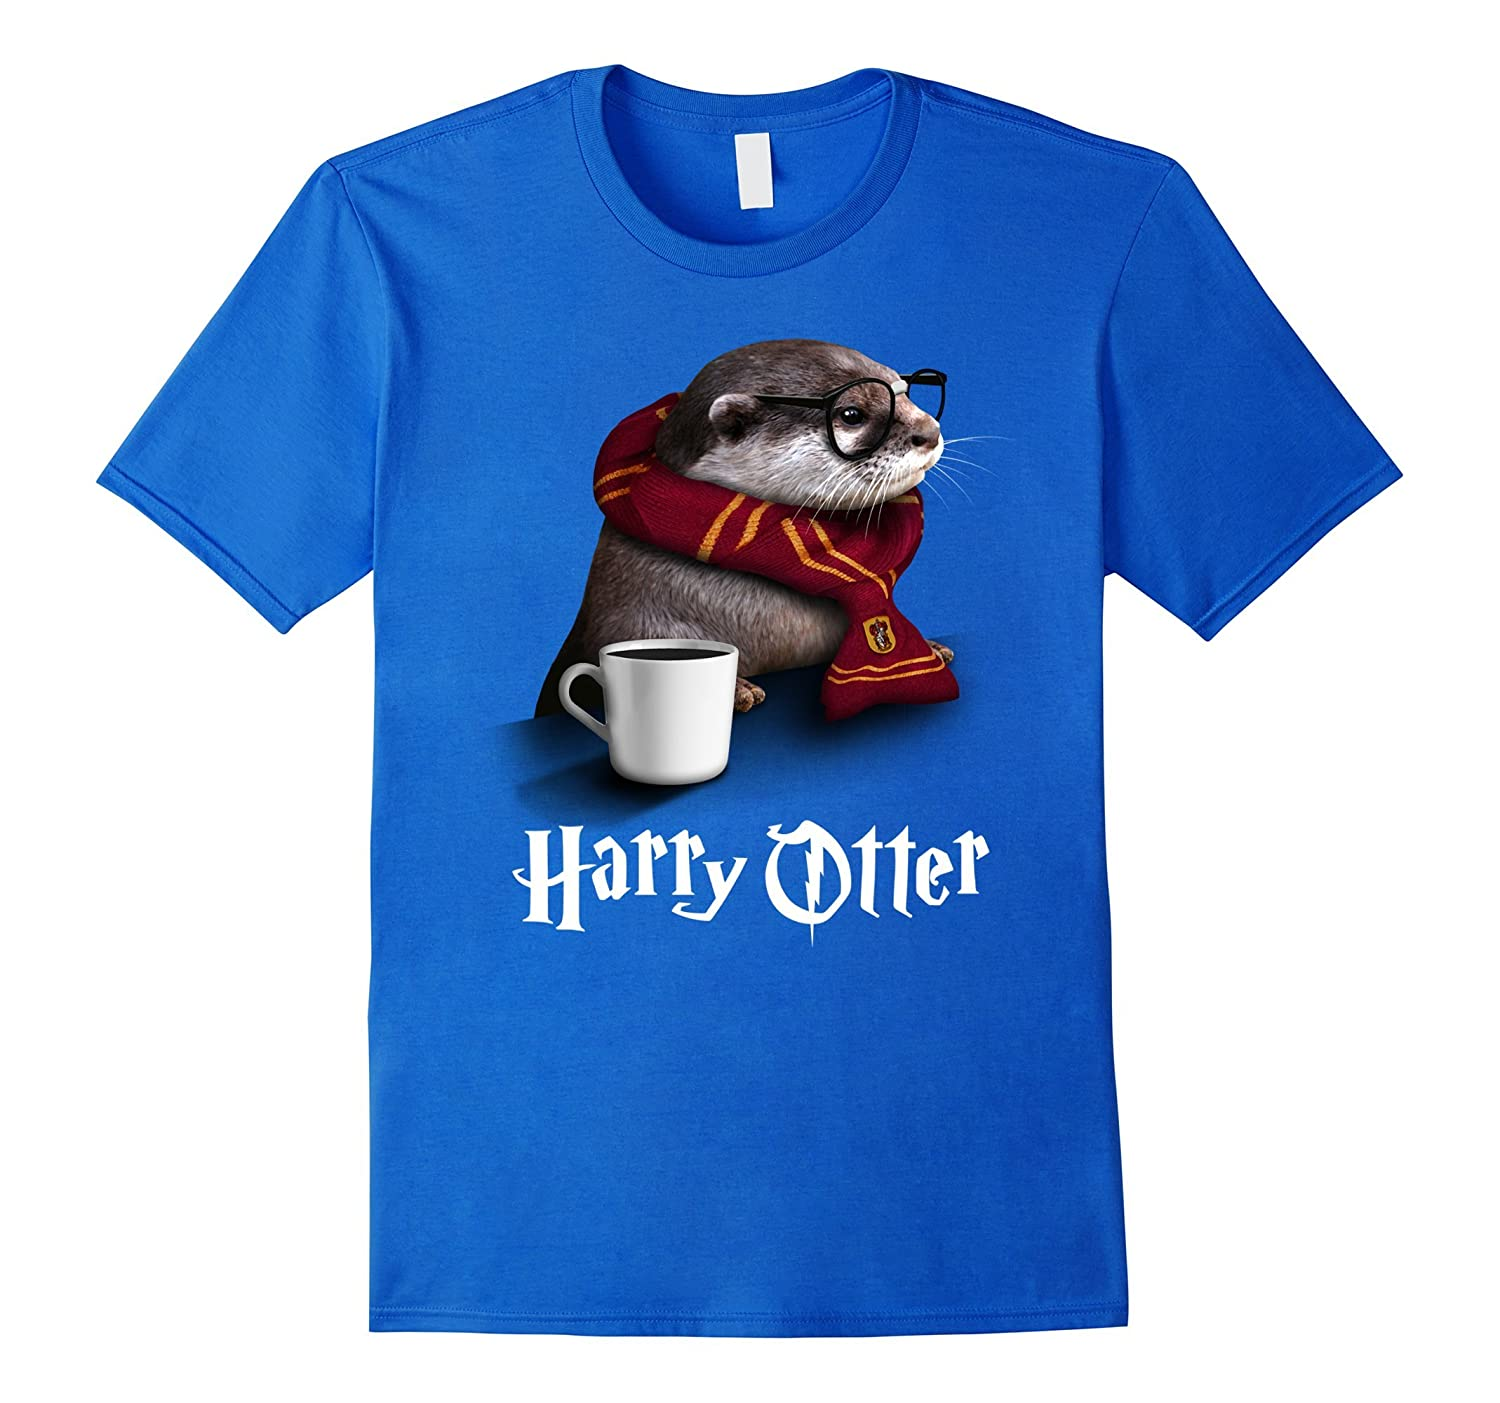 25744a1dc Funny Otter T-shirt - Harry Otter Shirt for Otter lover-ANZ ⋆ Anztshirt